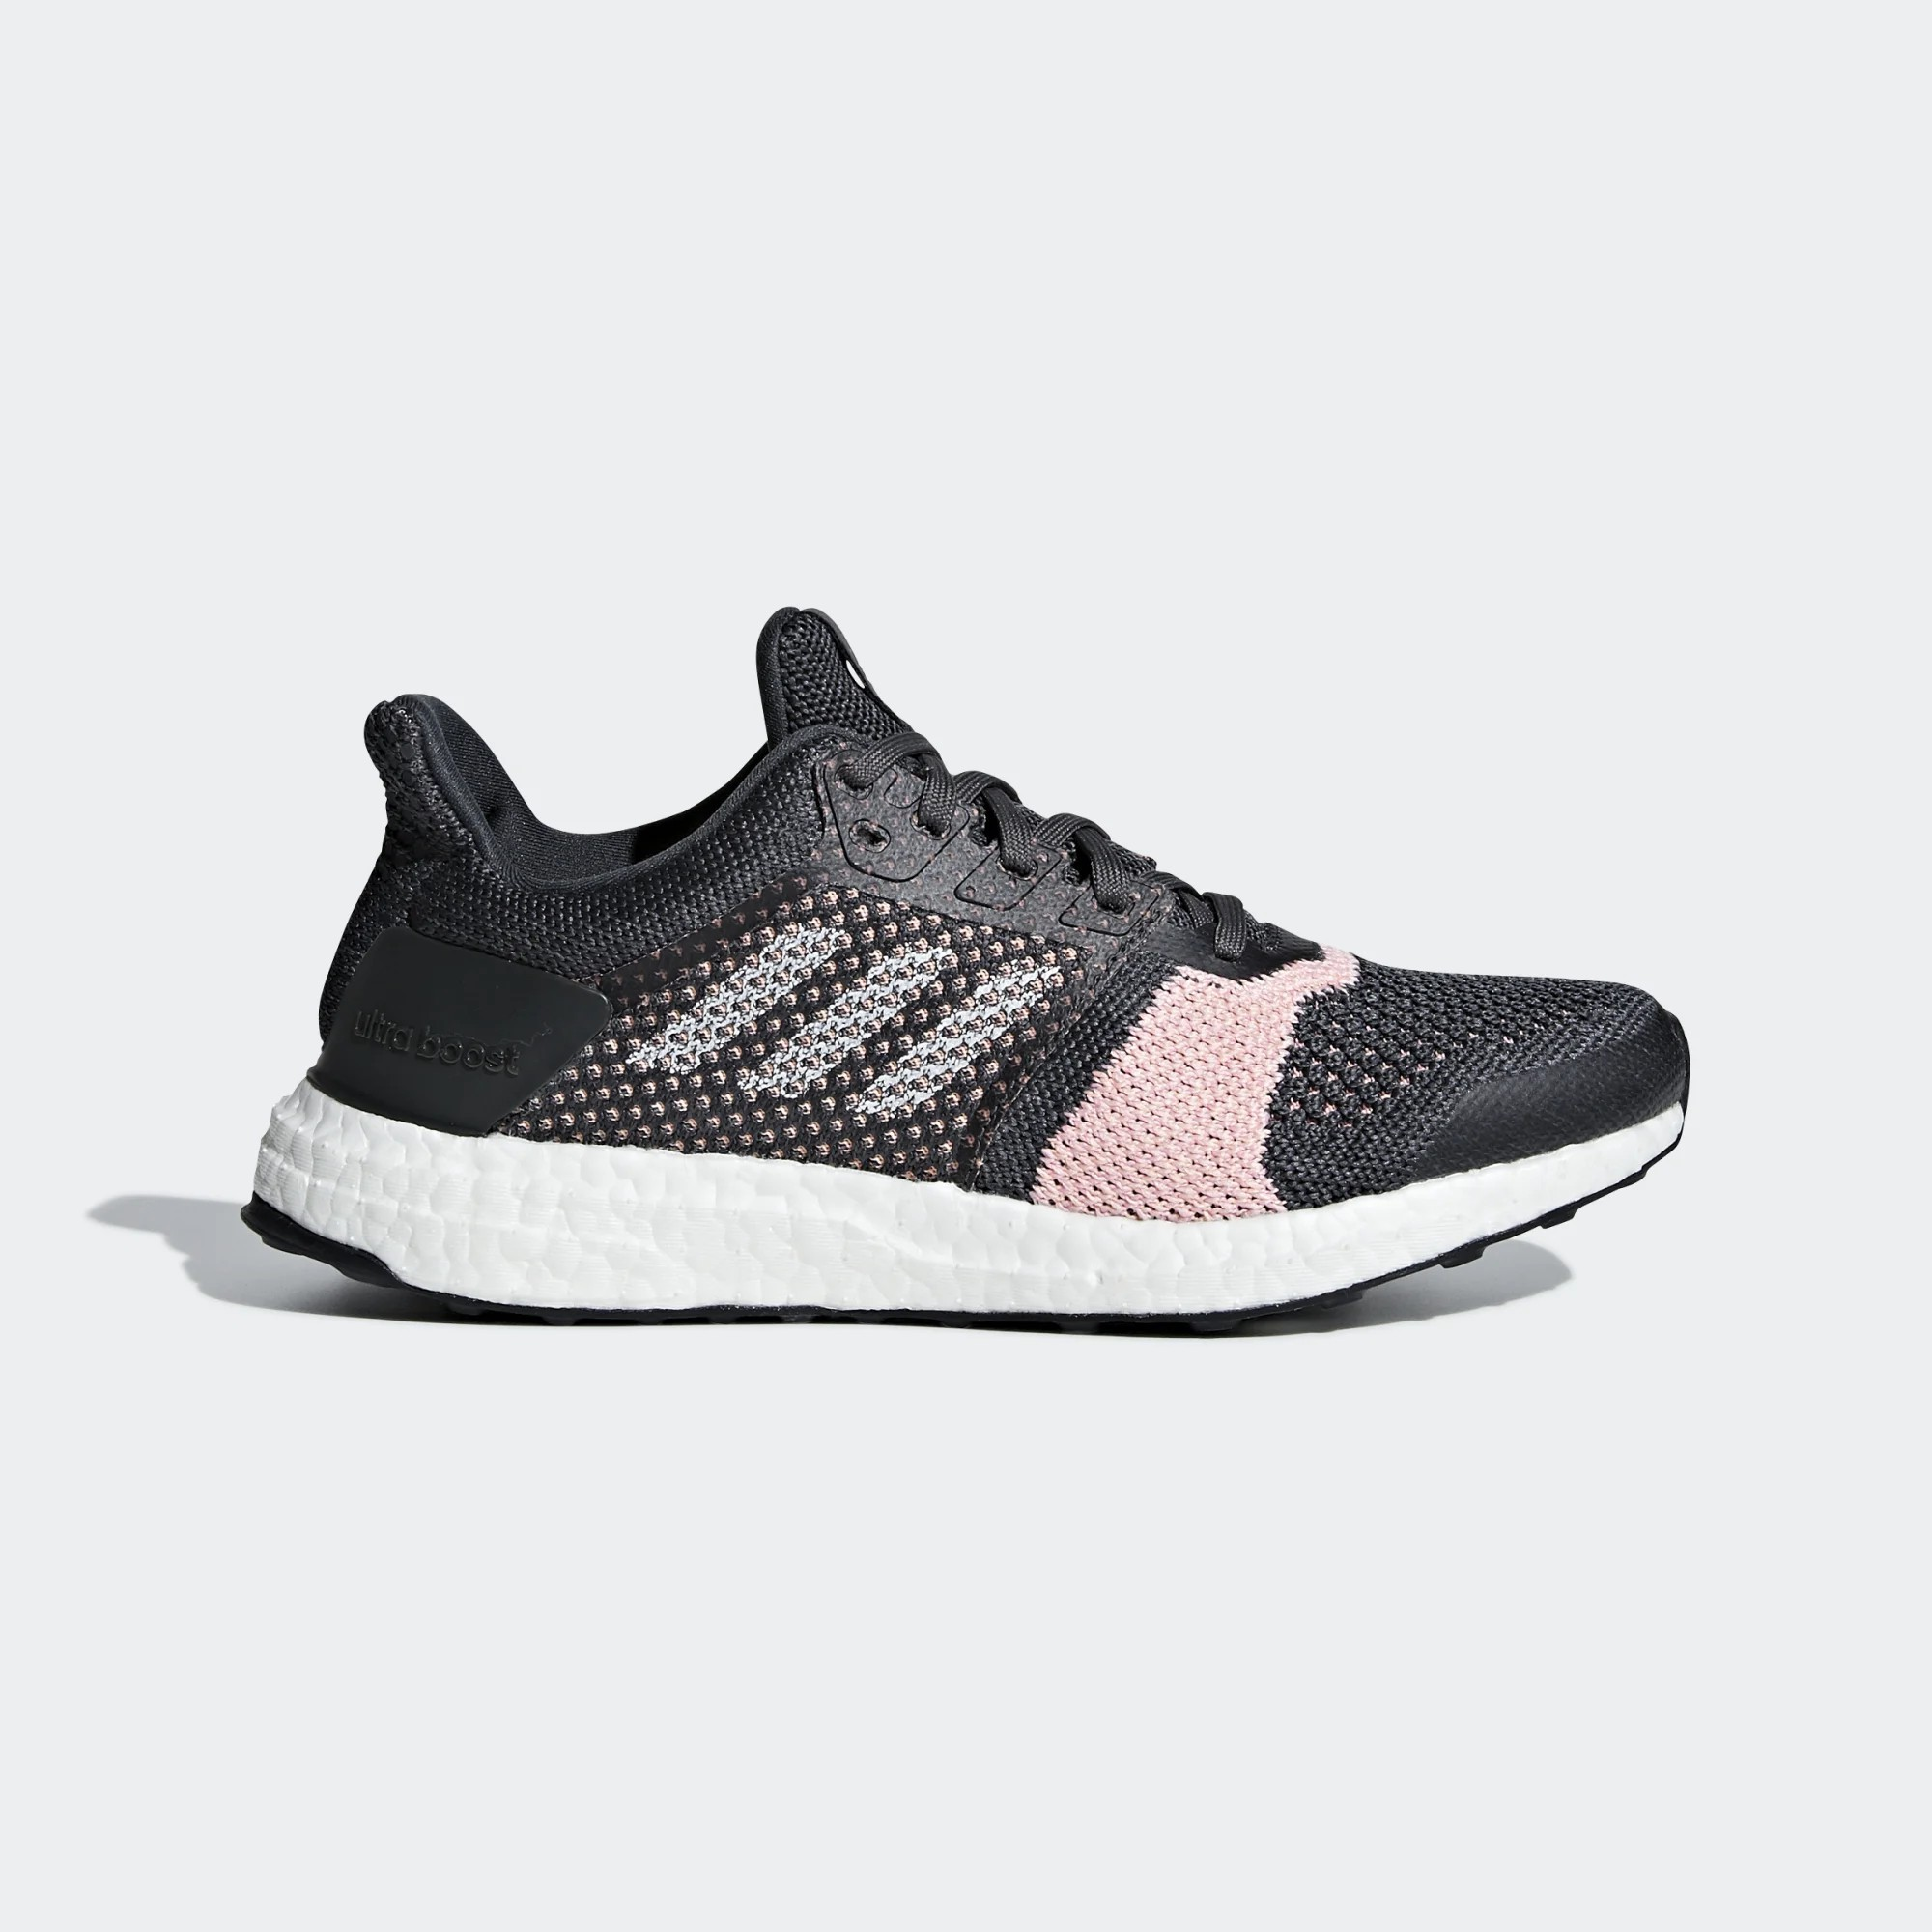 Adidas Femme Ultra Boost ST Carbon/Blanche/Gris B75864